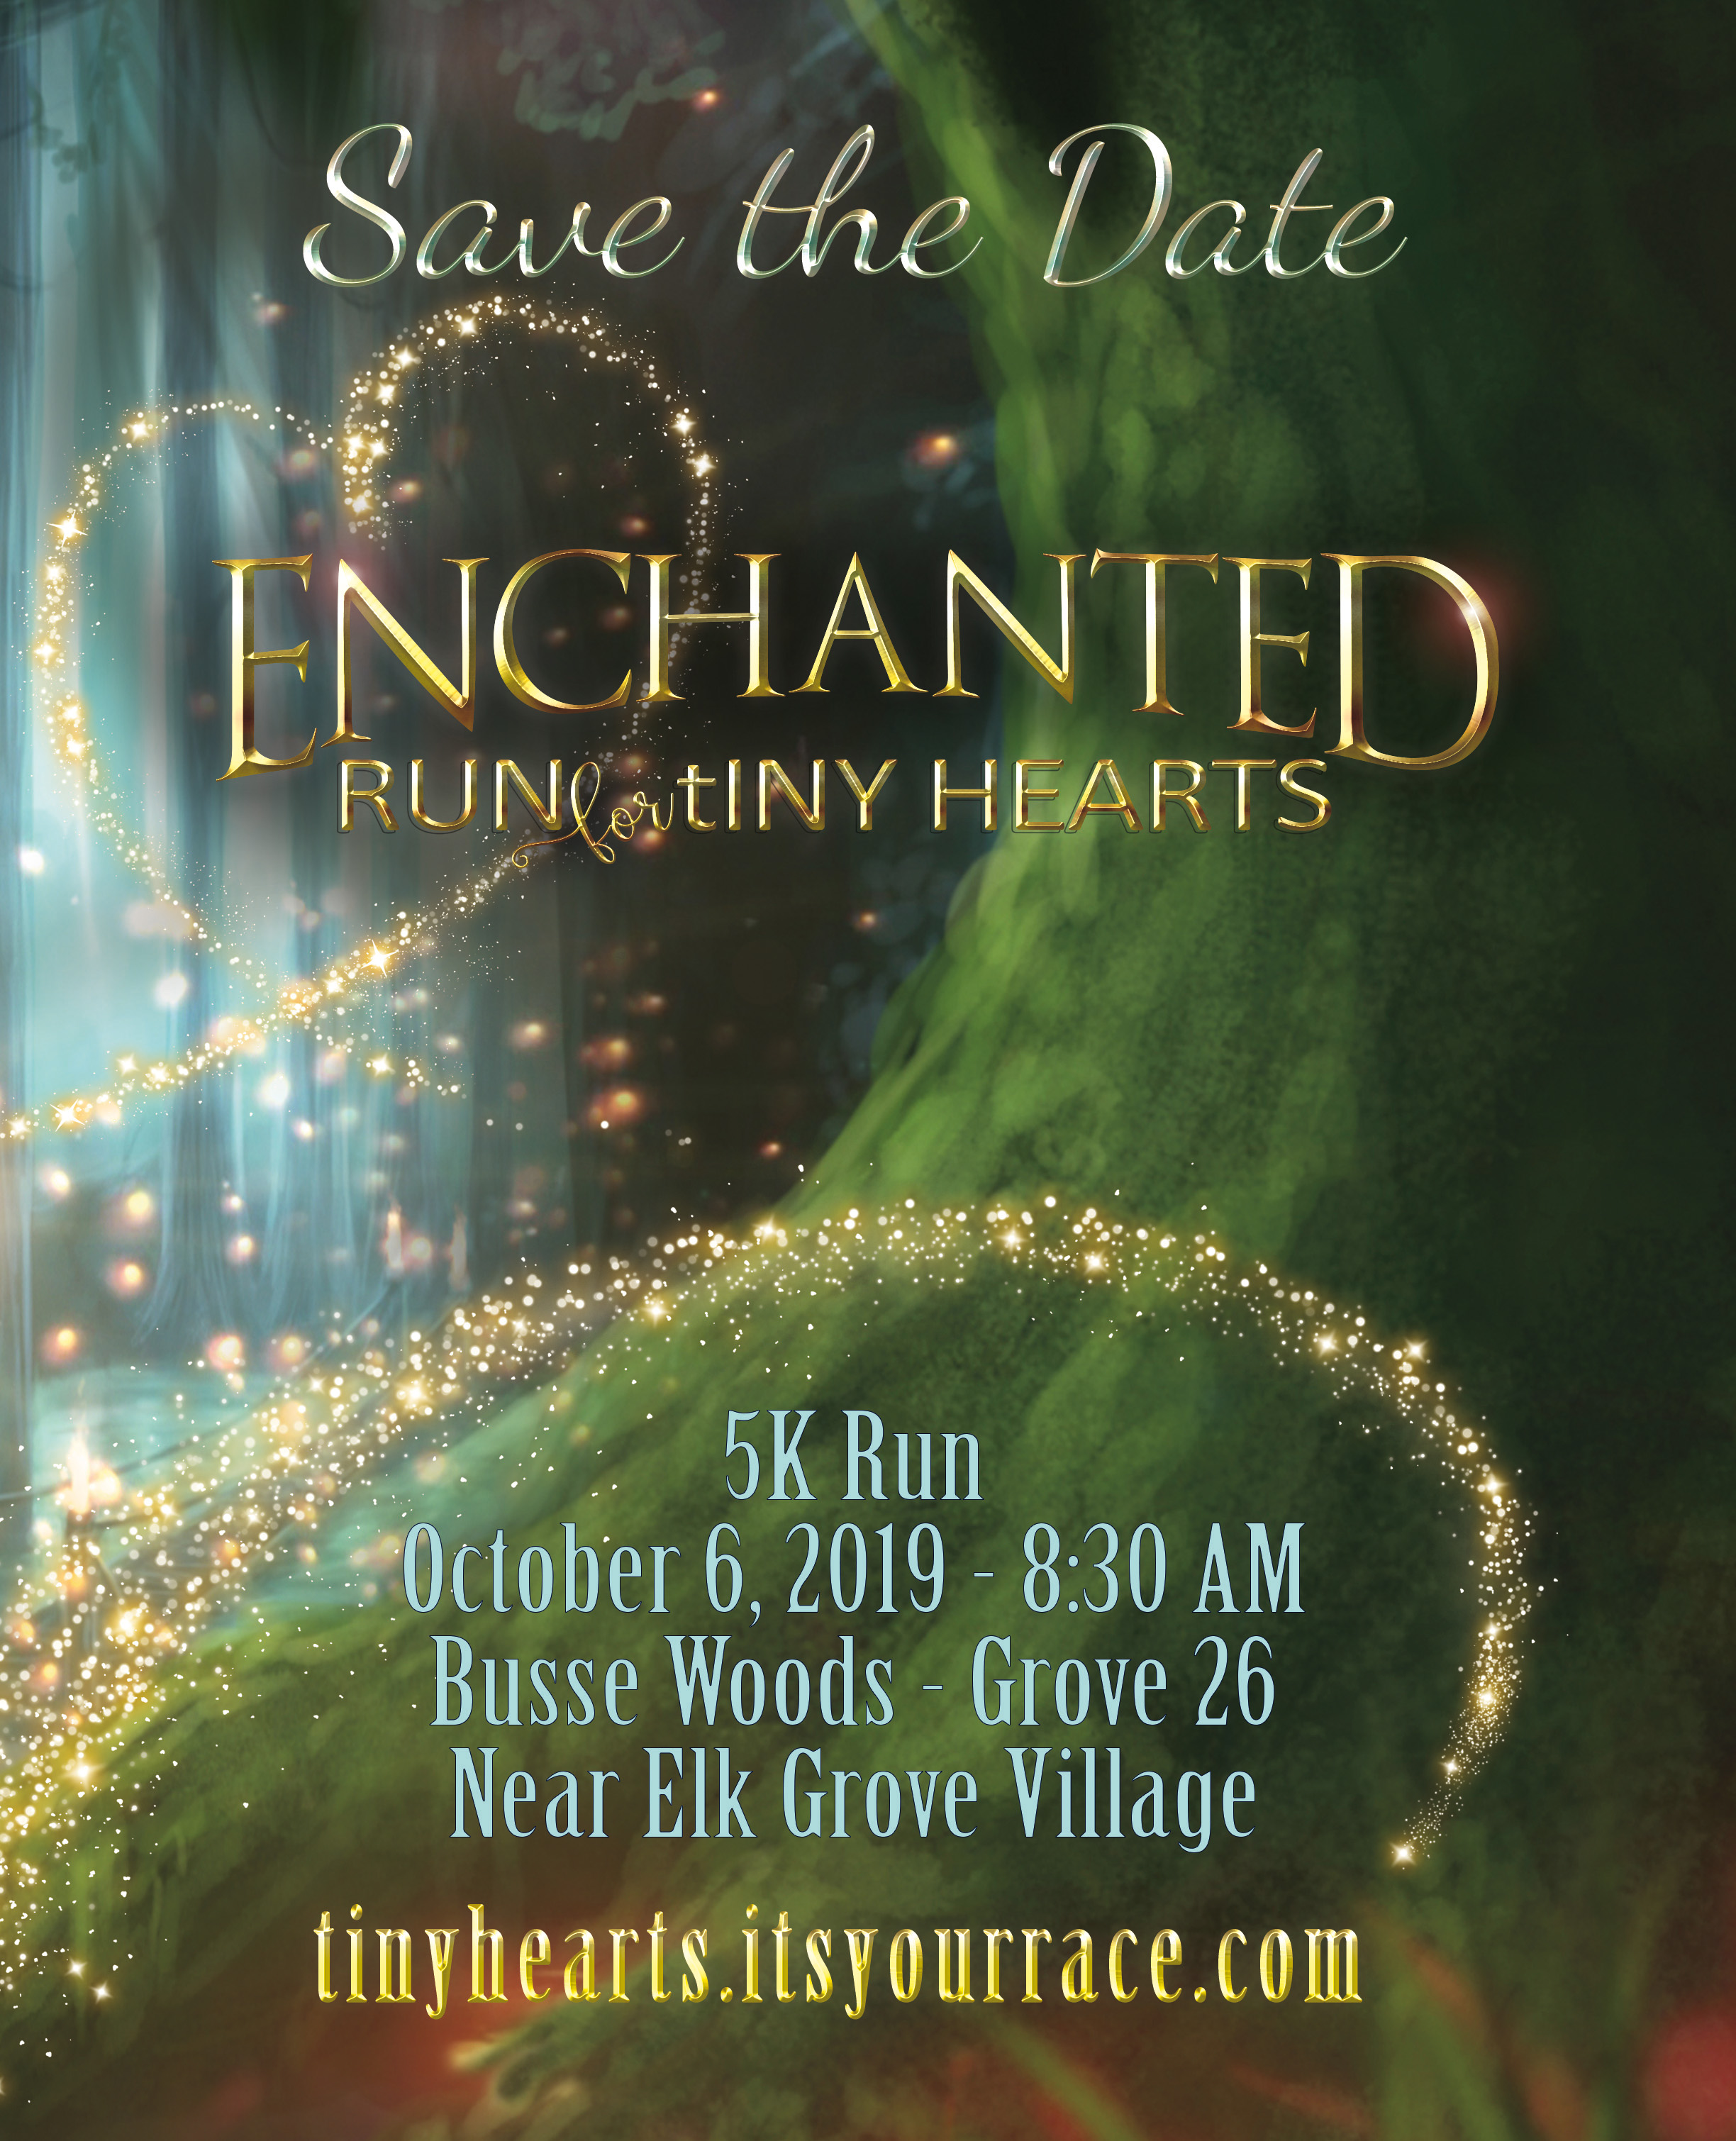 Enchanted Run for Saving tiny Hearts